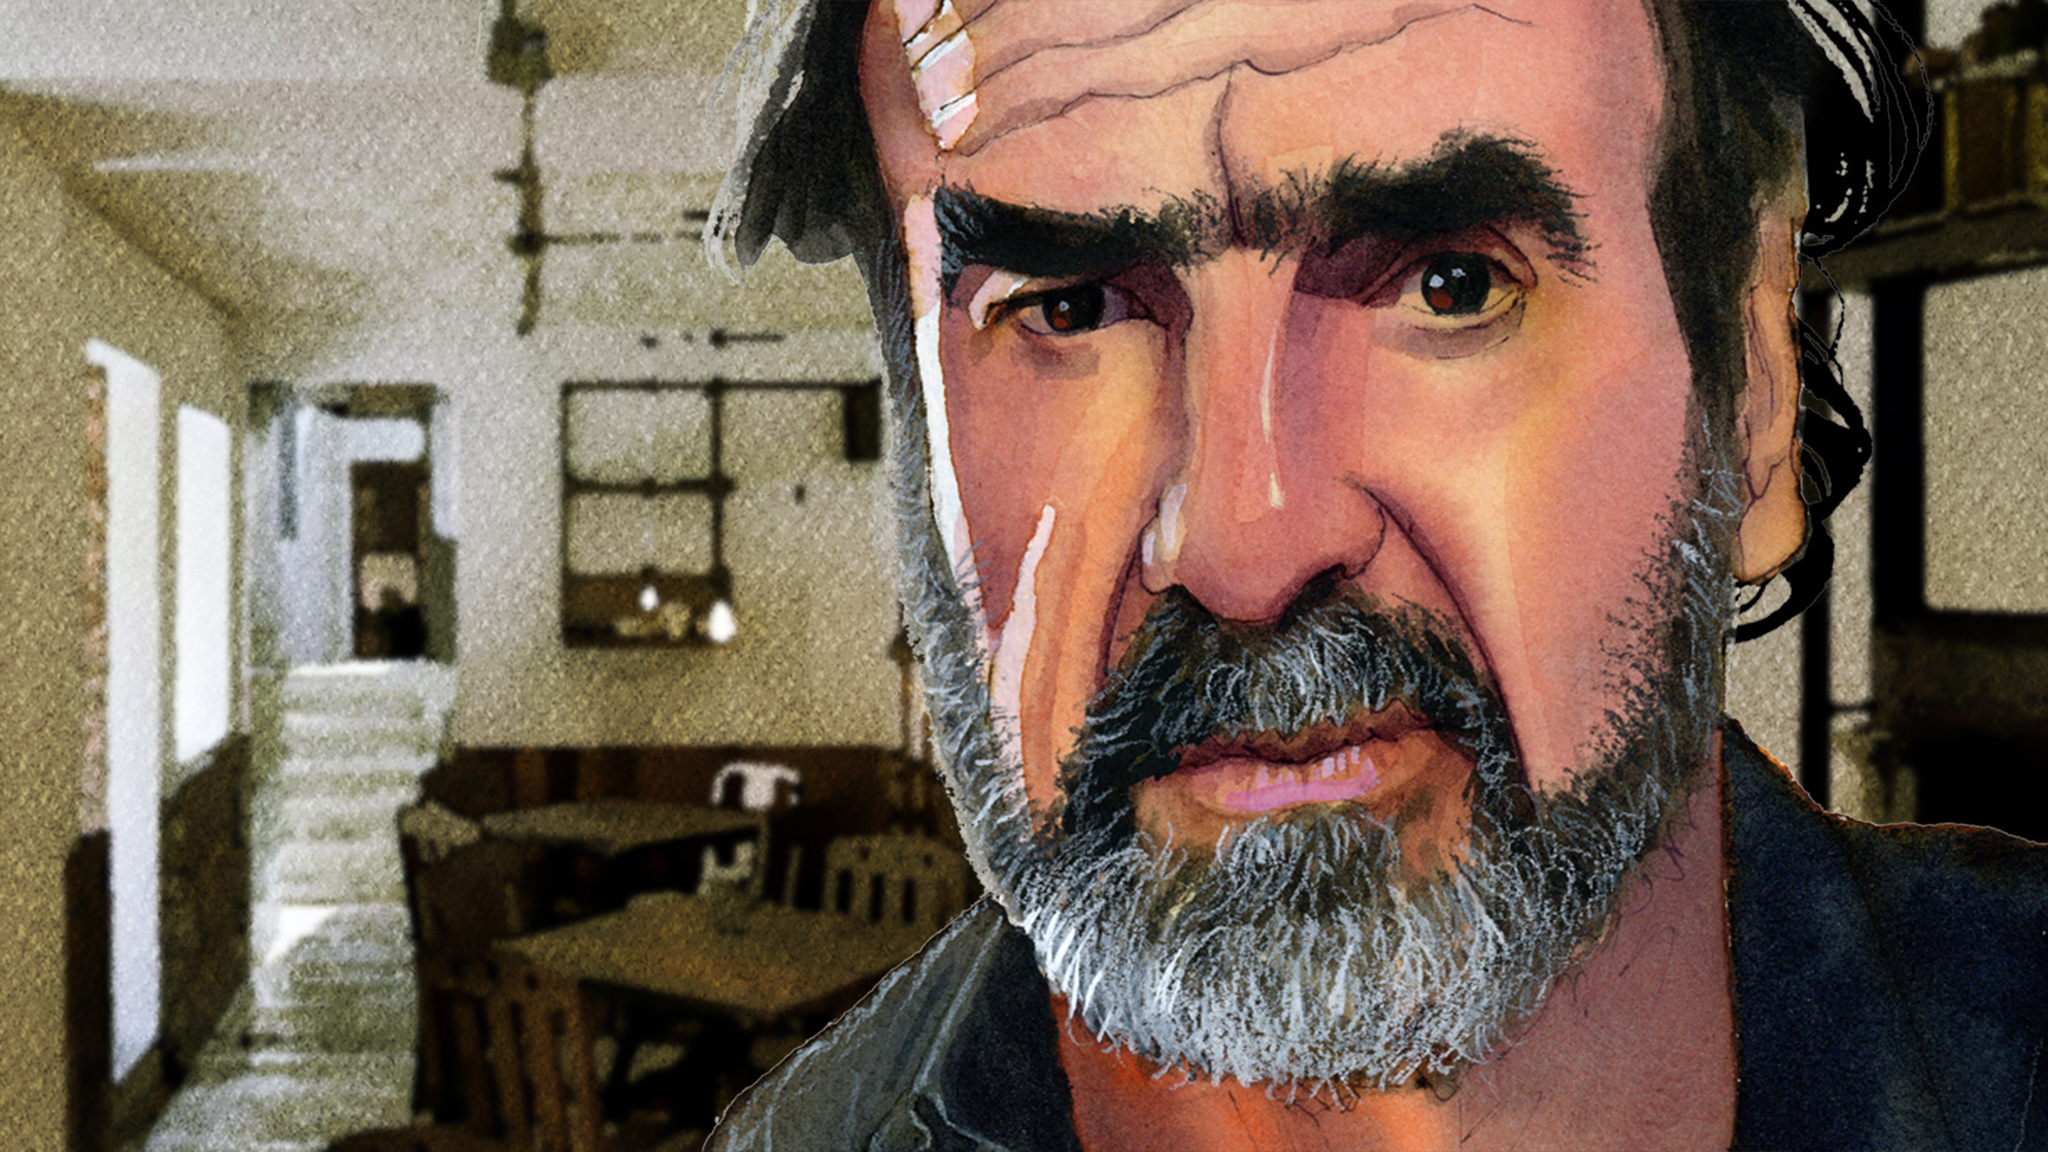 Eric Cantona on seagulls, fixing Man Utd and why you can't buy passion